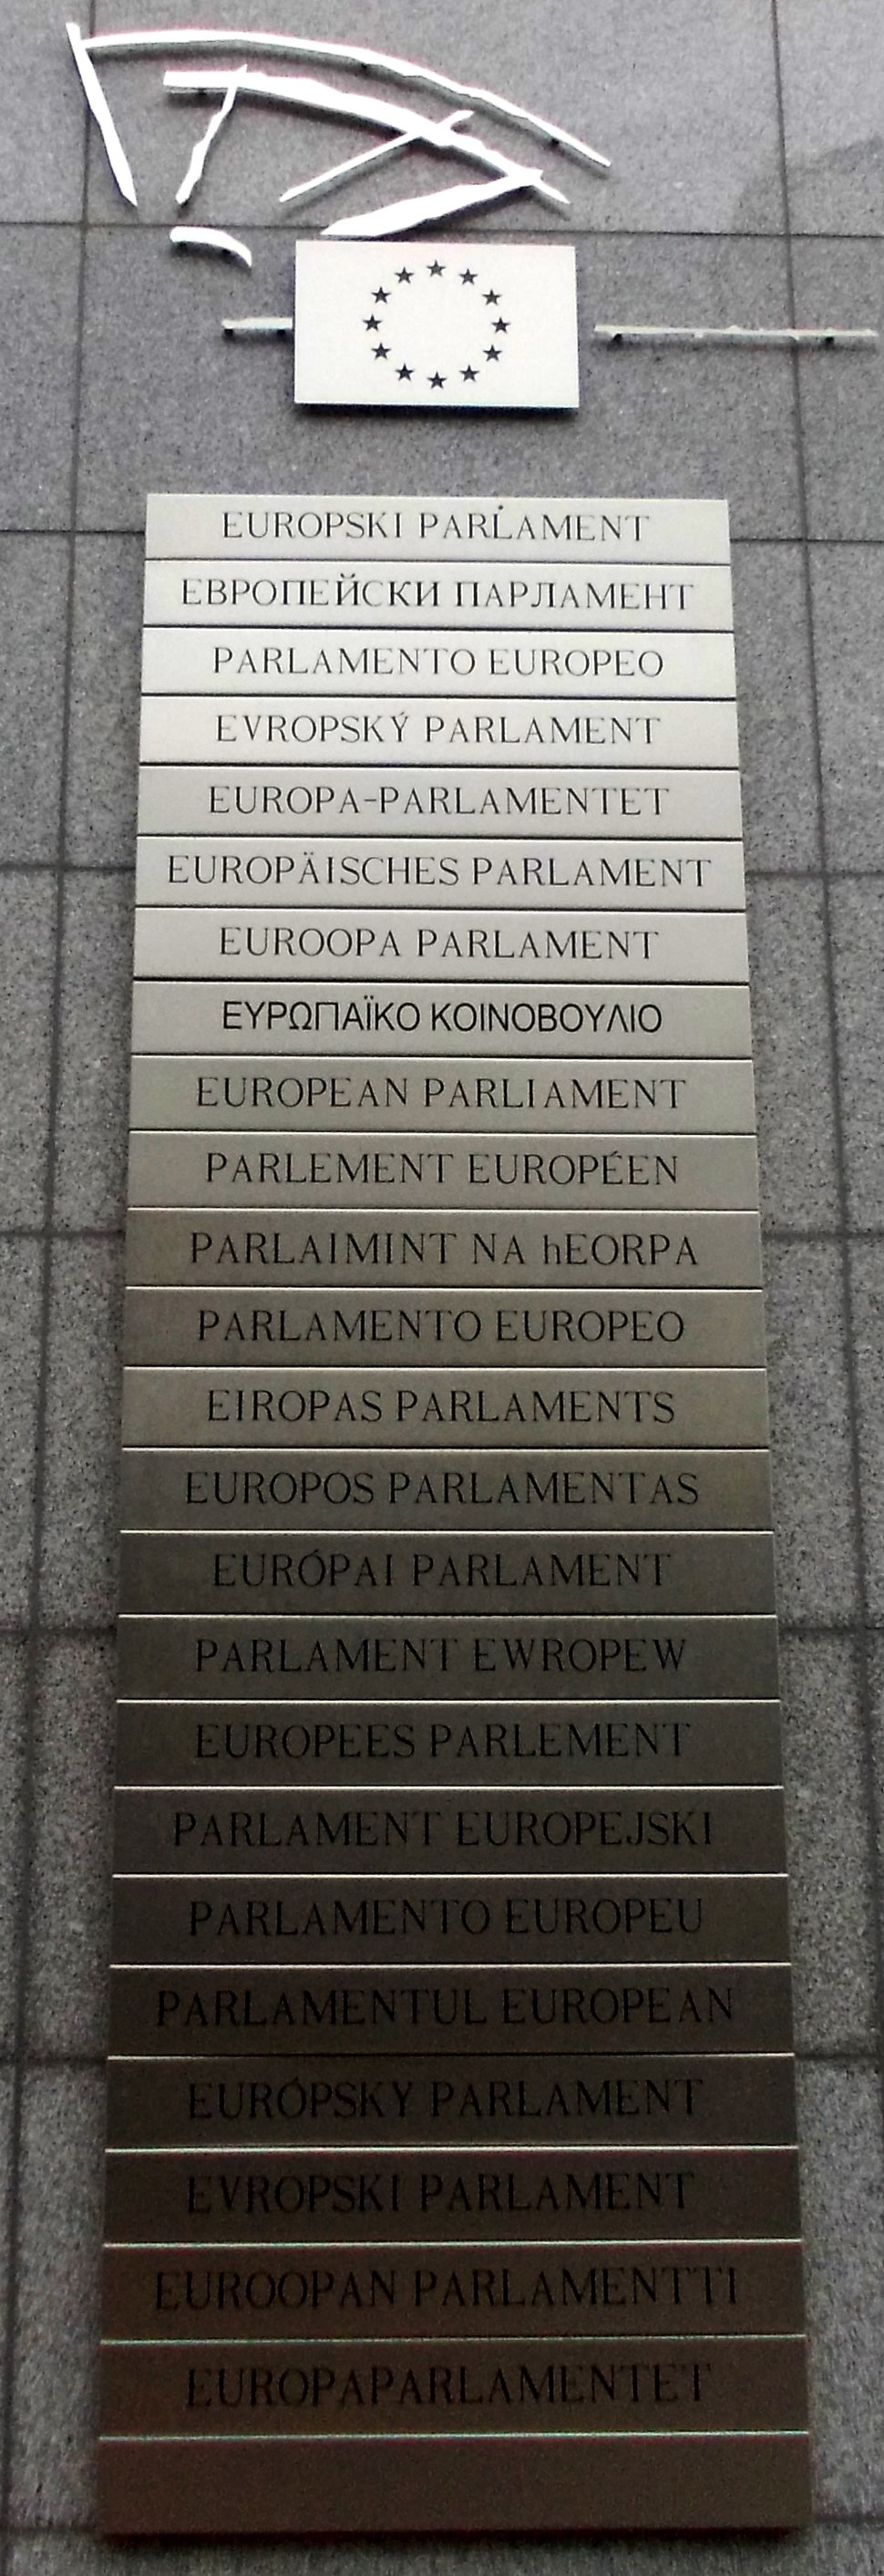 """European Parliament"" on official languages of the European Union"